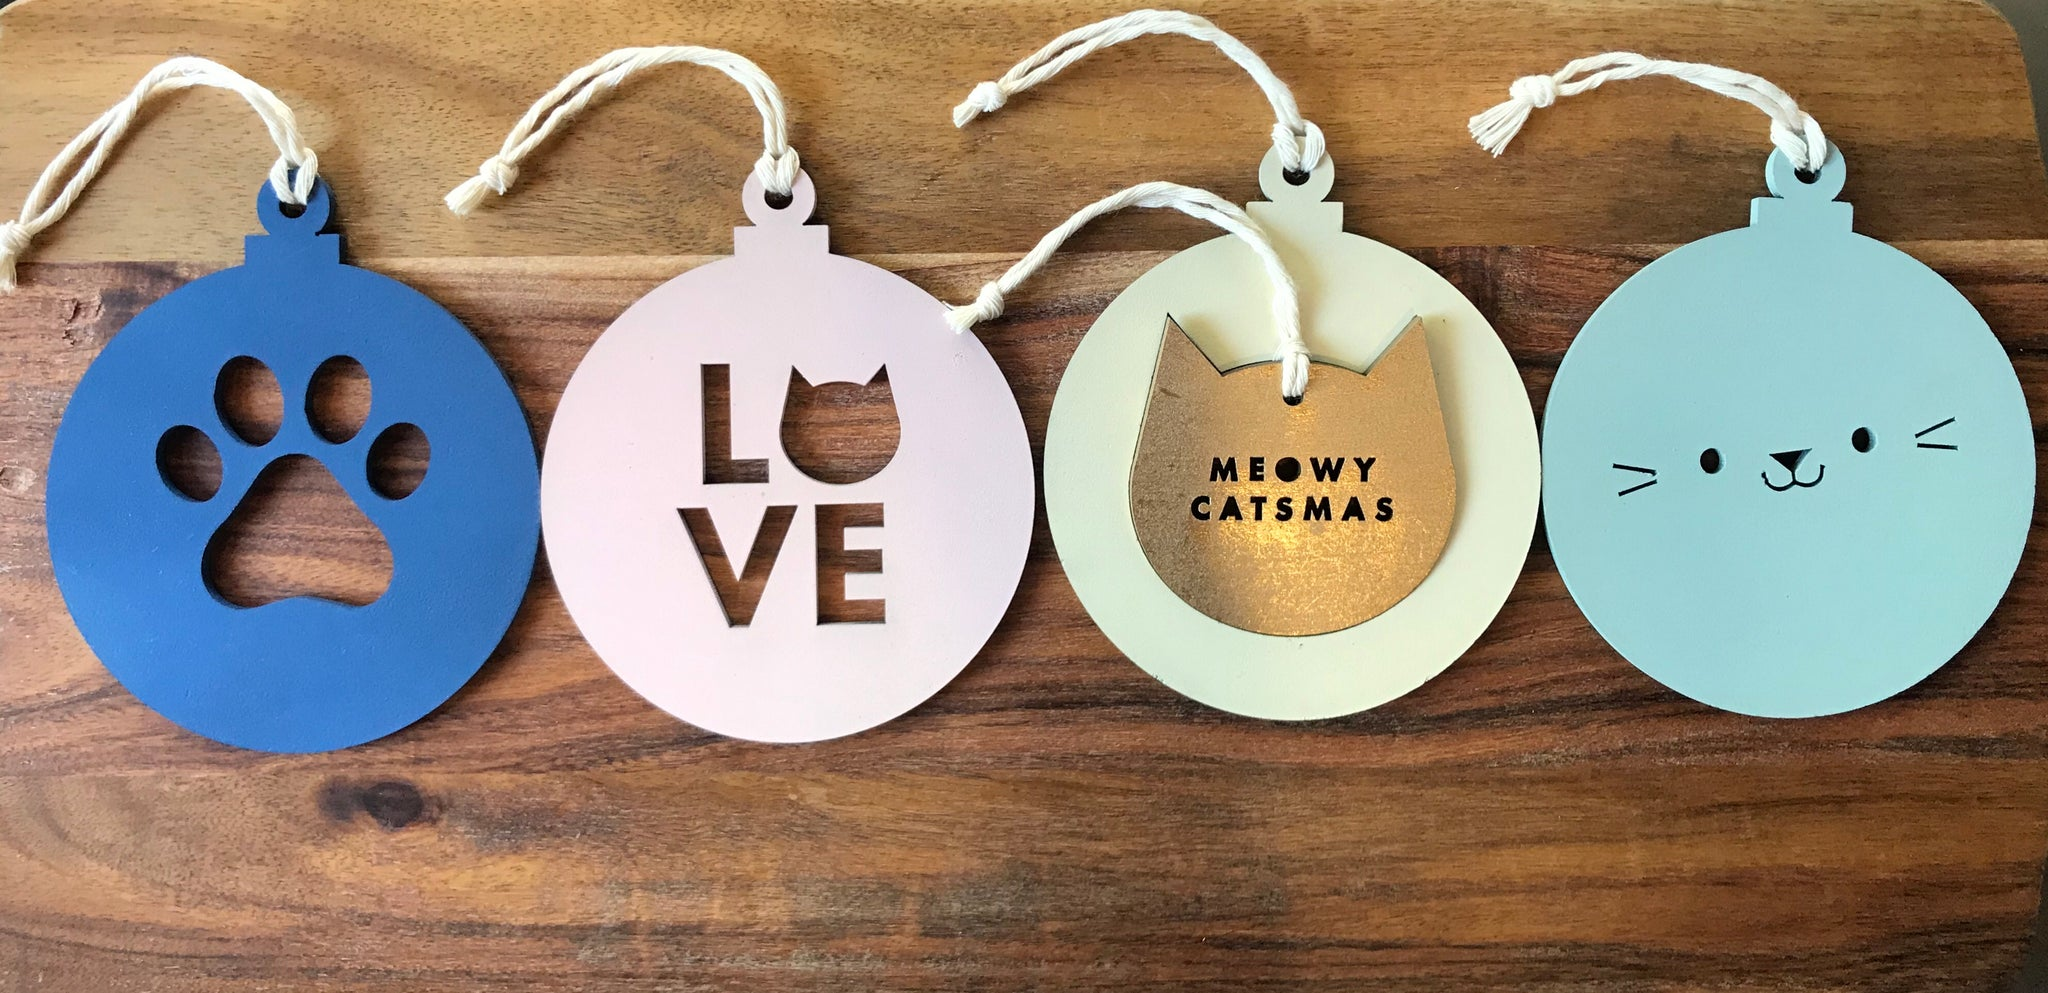 Meowy Catsmas Baubles